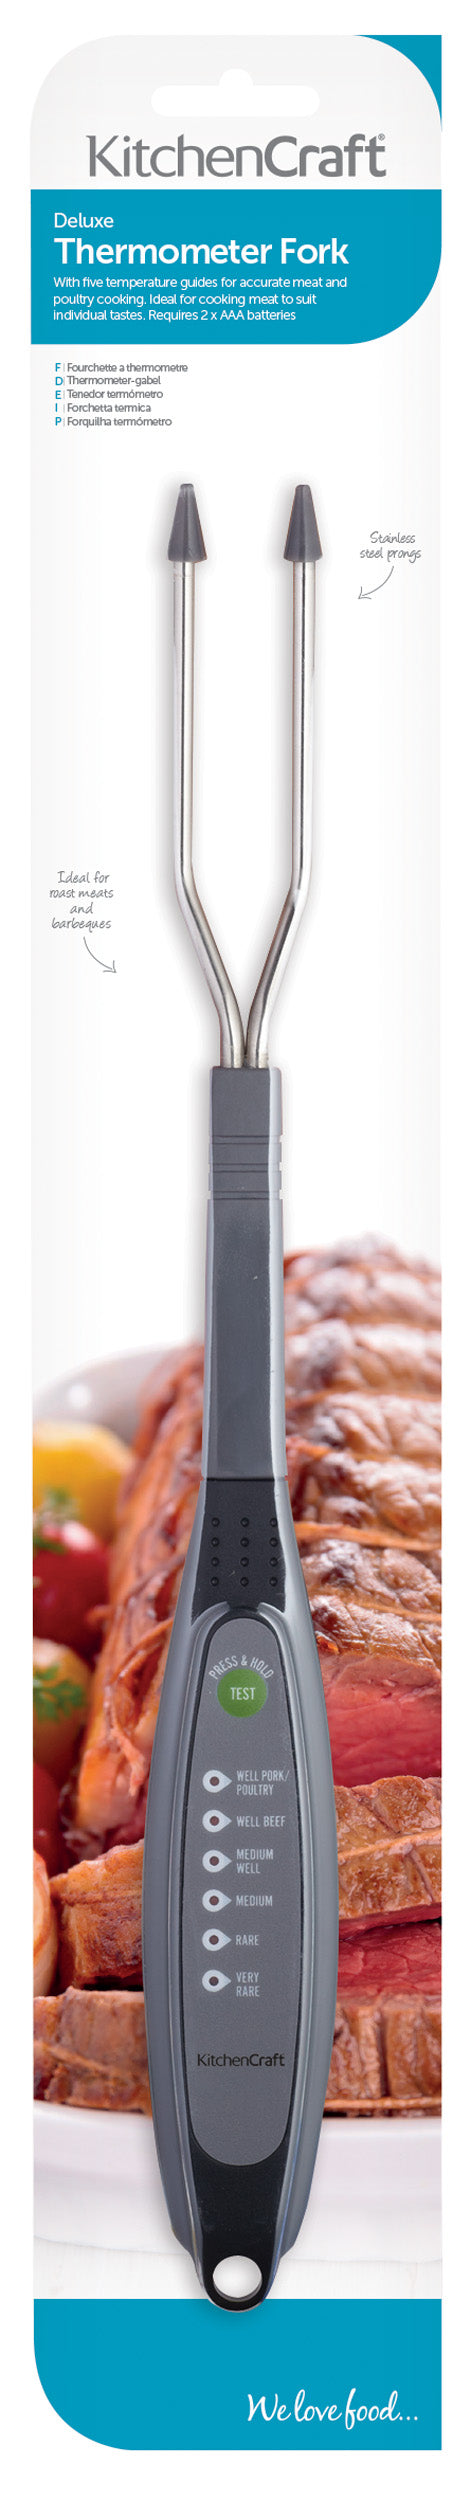 Kitchencraft Digital Thermometer Fork